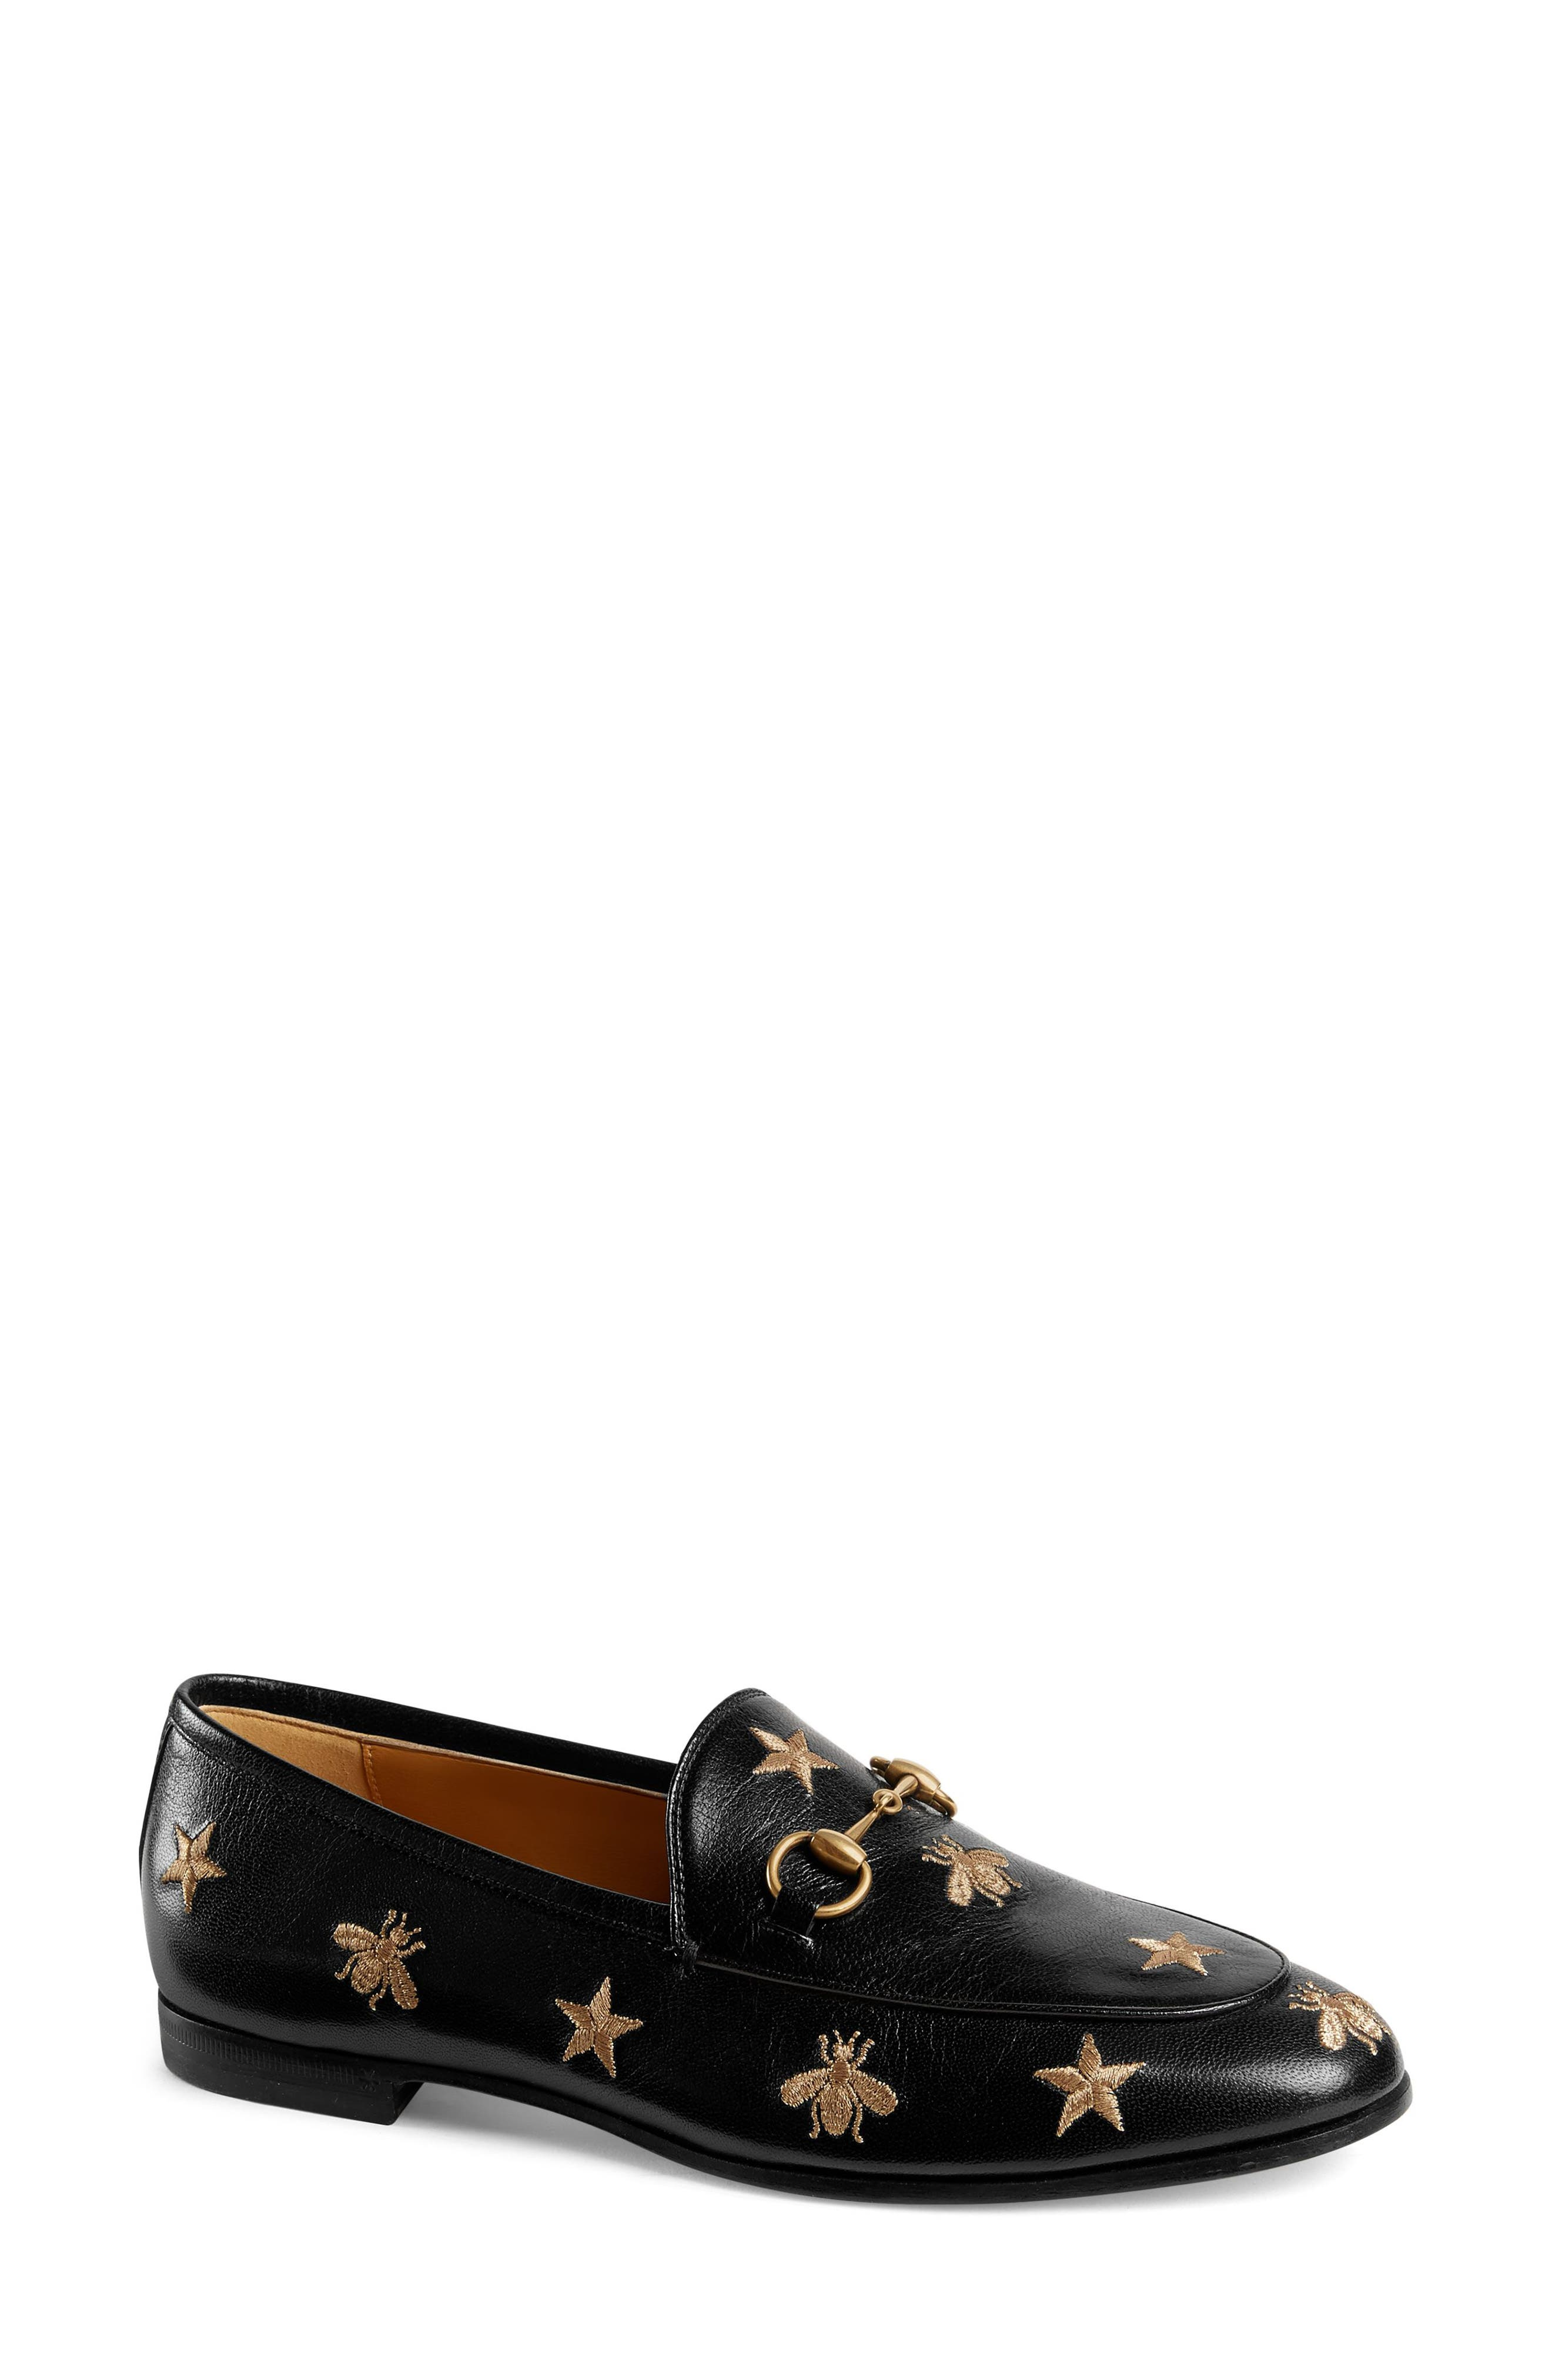 Jordaan Embroidered Bee Loafer,                             Main thumbnail 1, color,                             BLACK